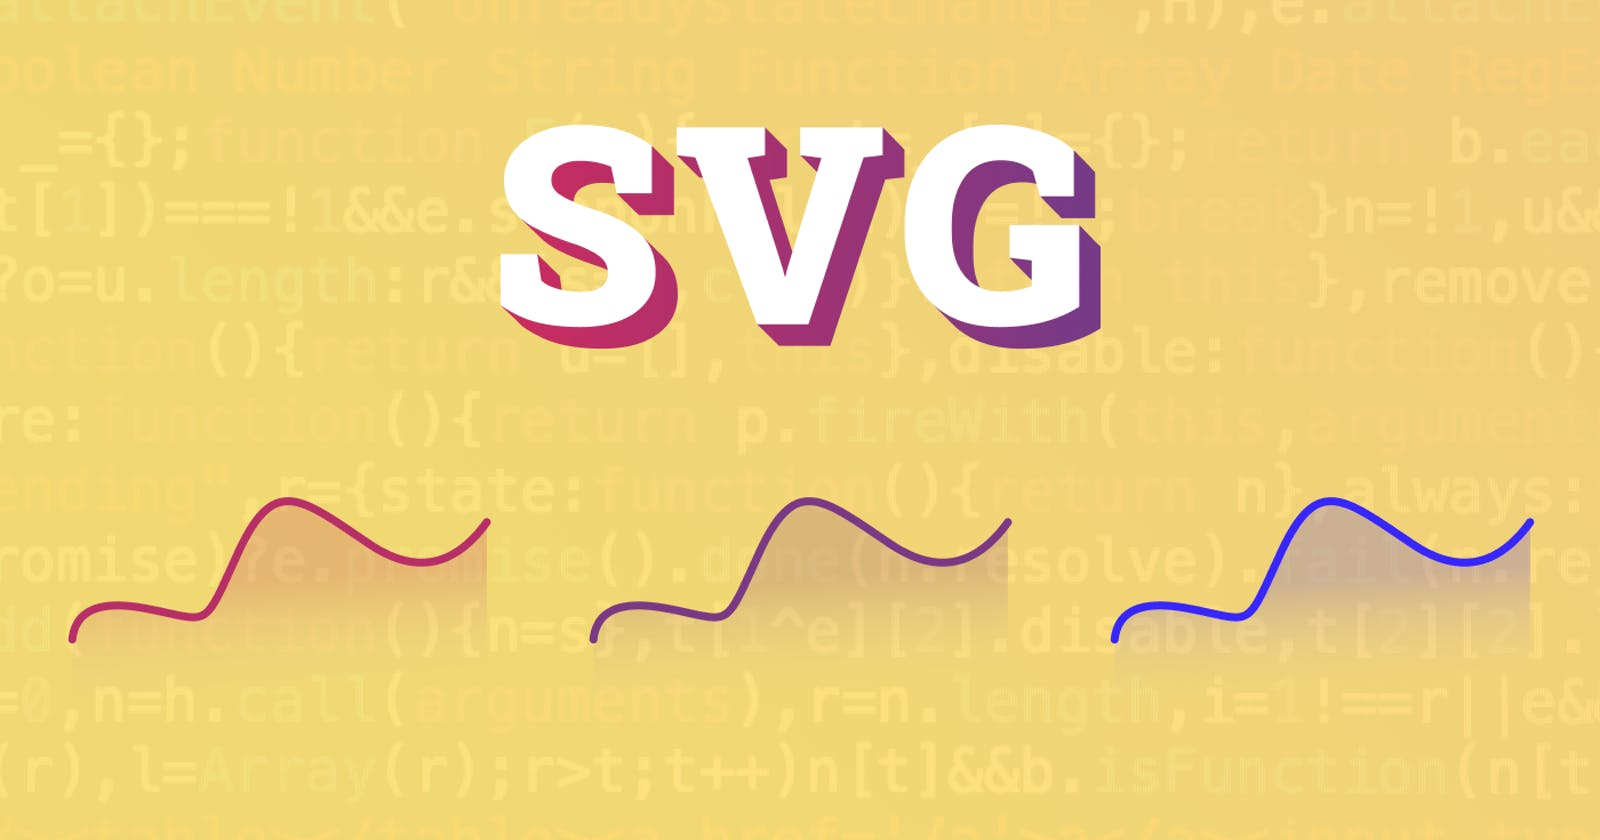 How to Use SVG inReact - The Easy Way